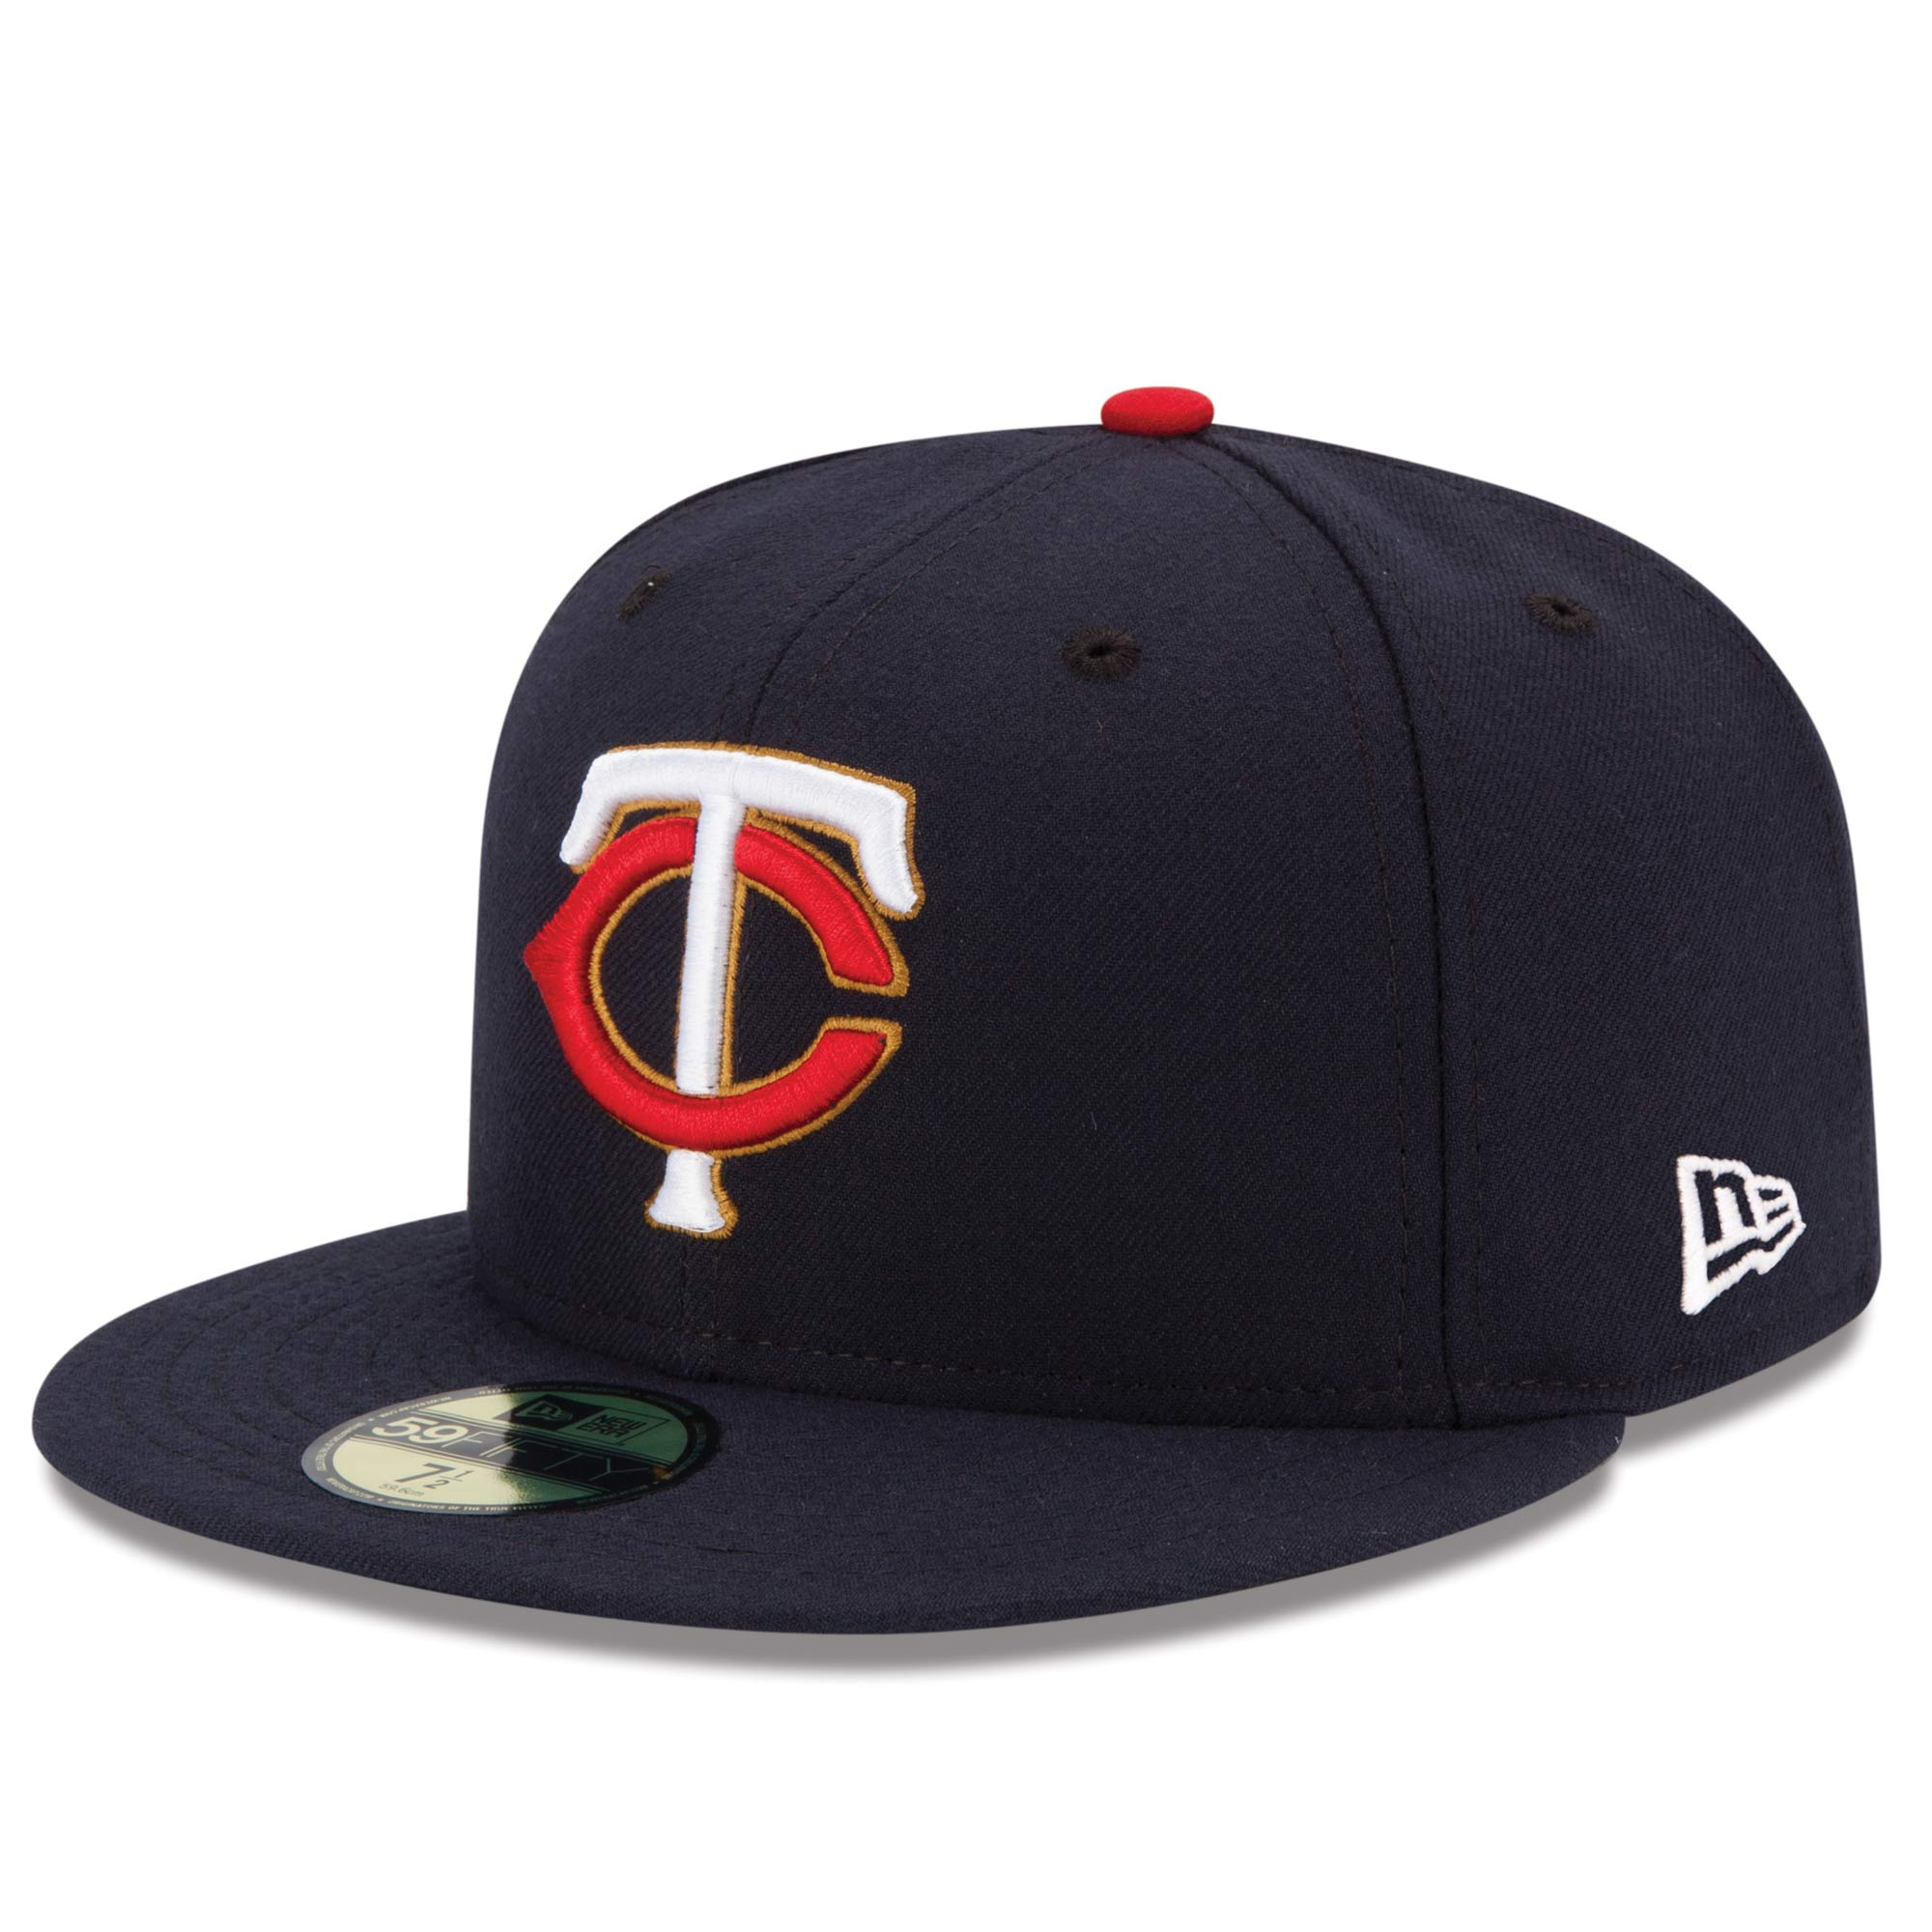 Minnesota Twins New Era Alternate Authentic Collection On-Field 59FIFTY Fitted Hat - Navy